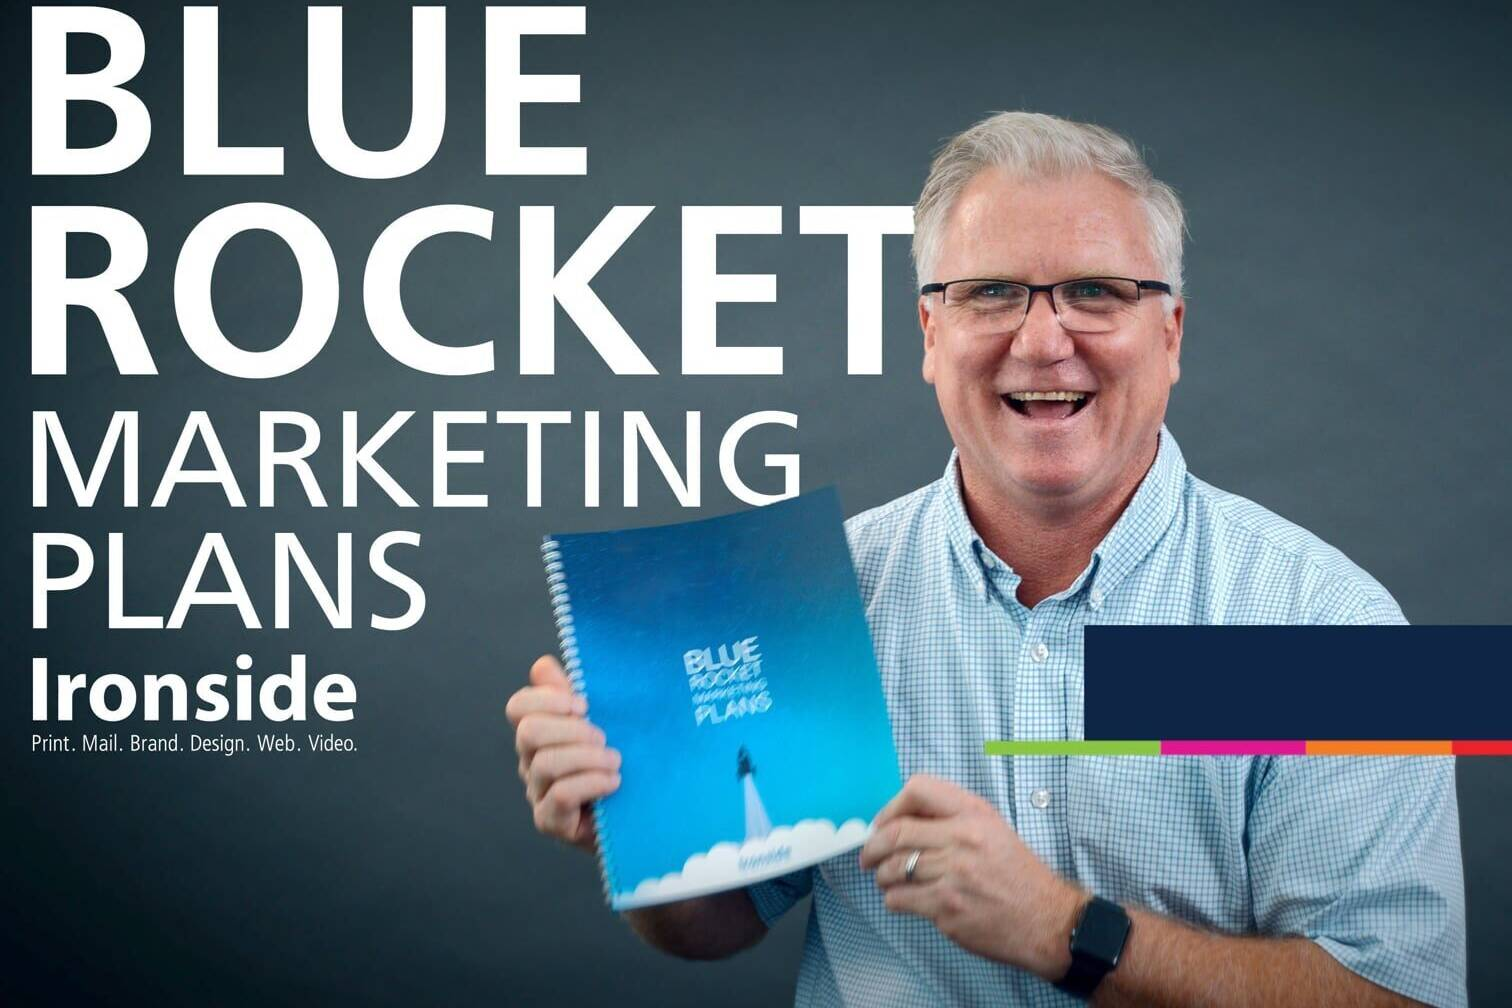 Ironside provides professional video production. Our Blue Rocket marketing plans offer a tailor-made strategy for your every need.